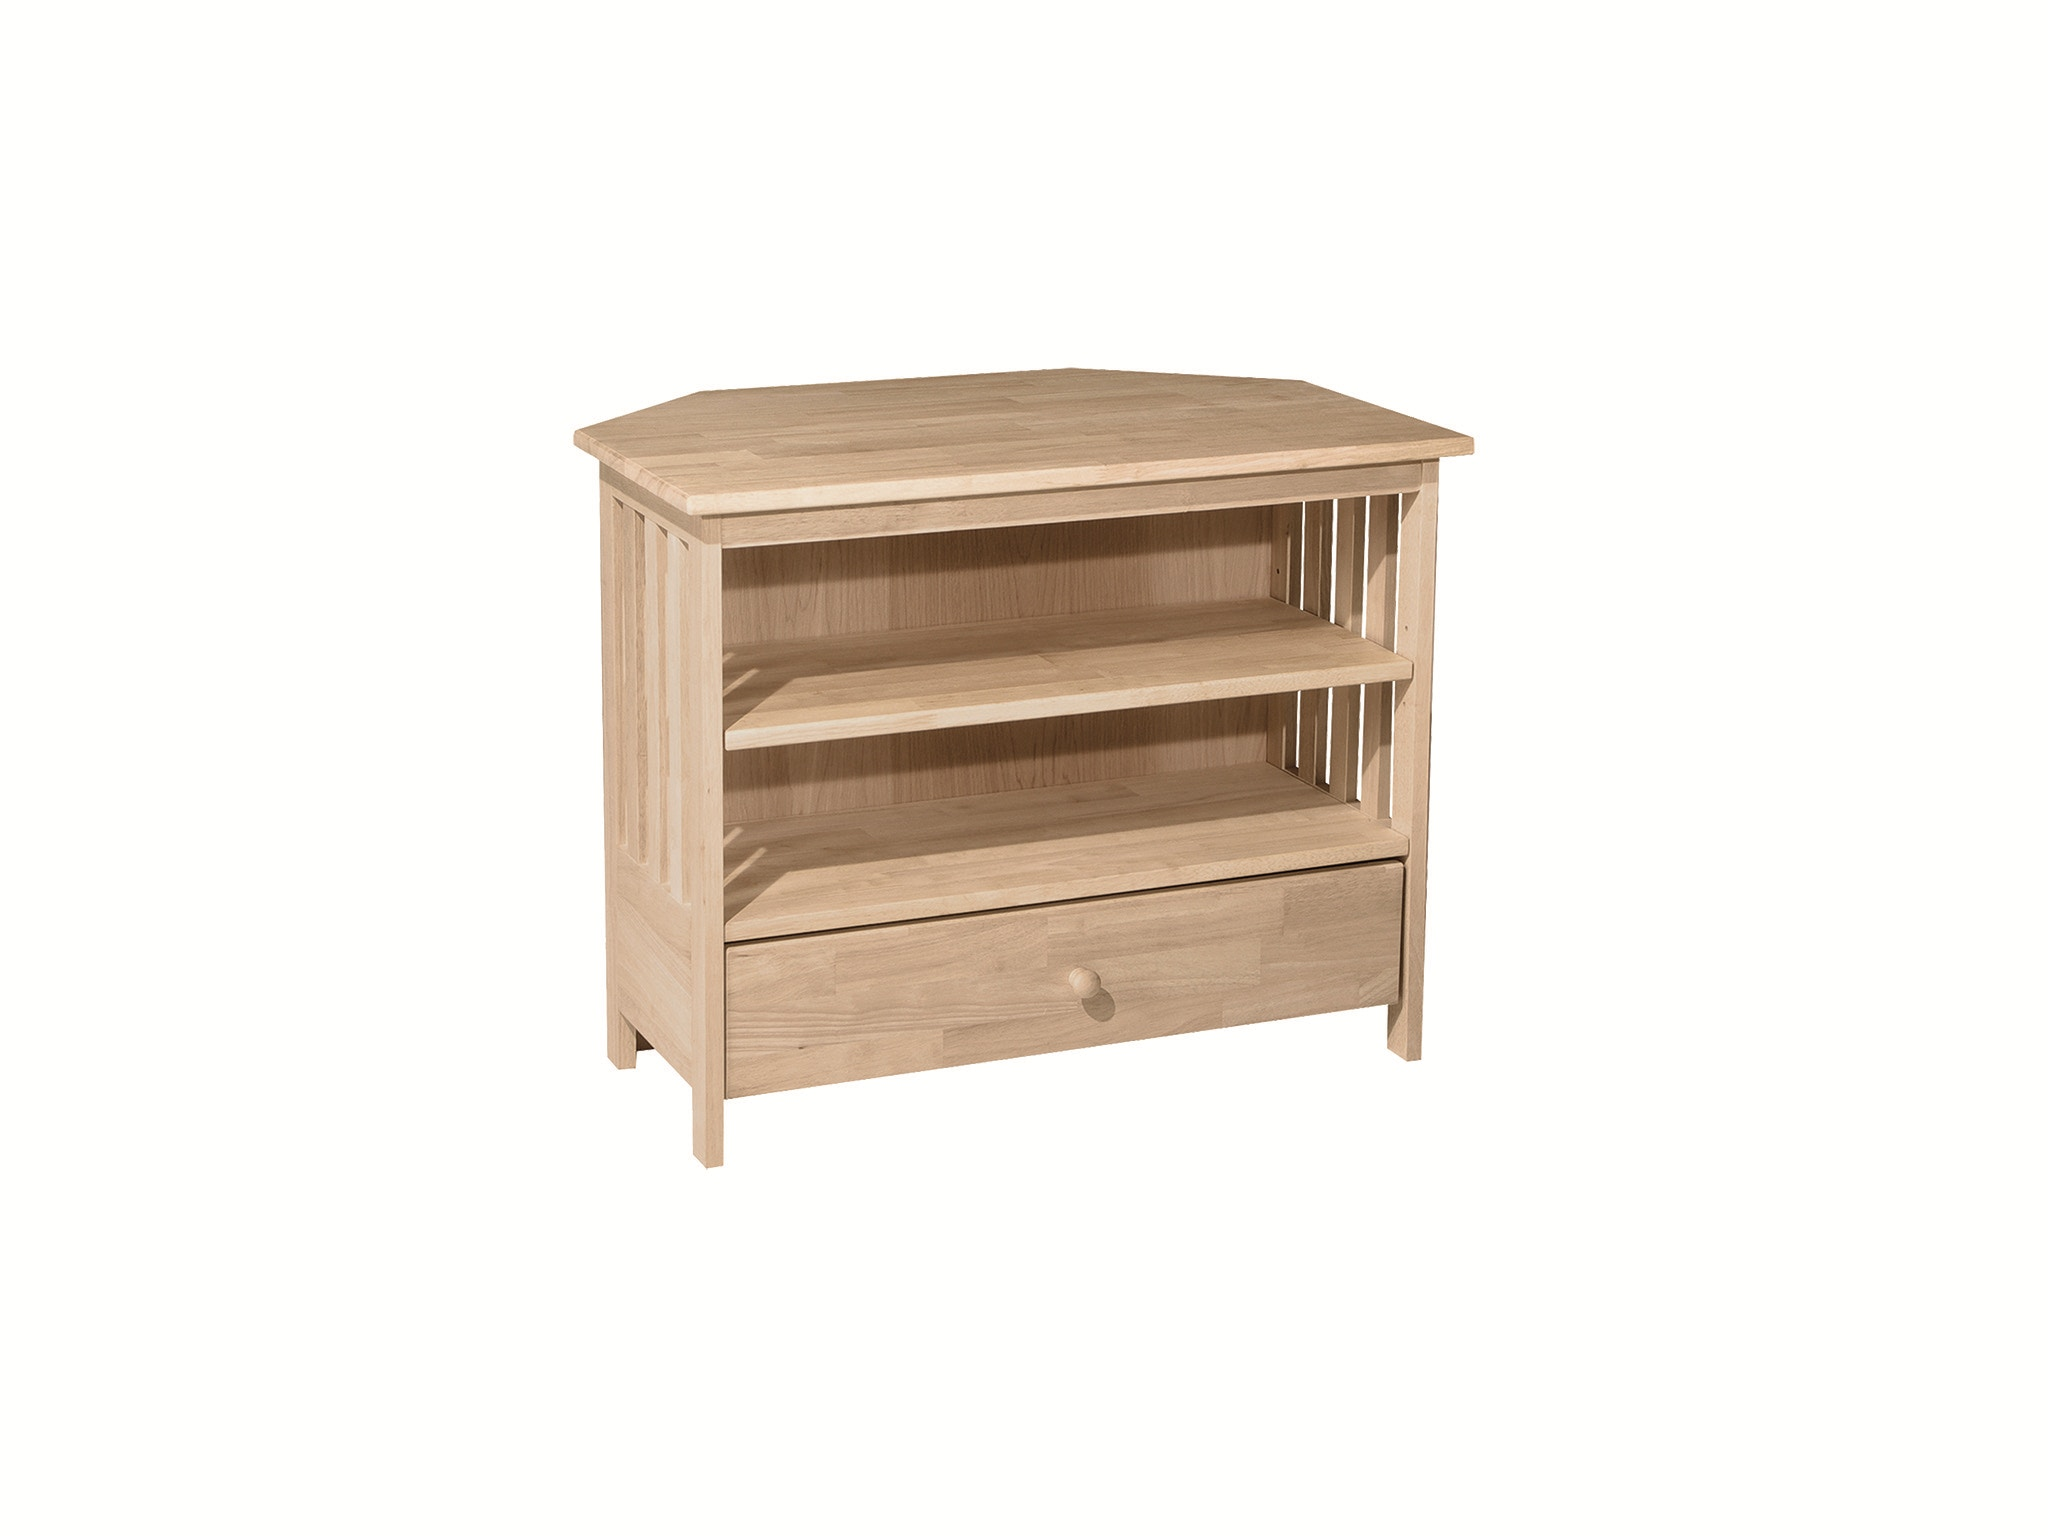 John Thomas Home Entertainment Mission Corner TV Stand<br><br>Requires 24'' corner & extension glides